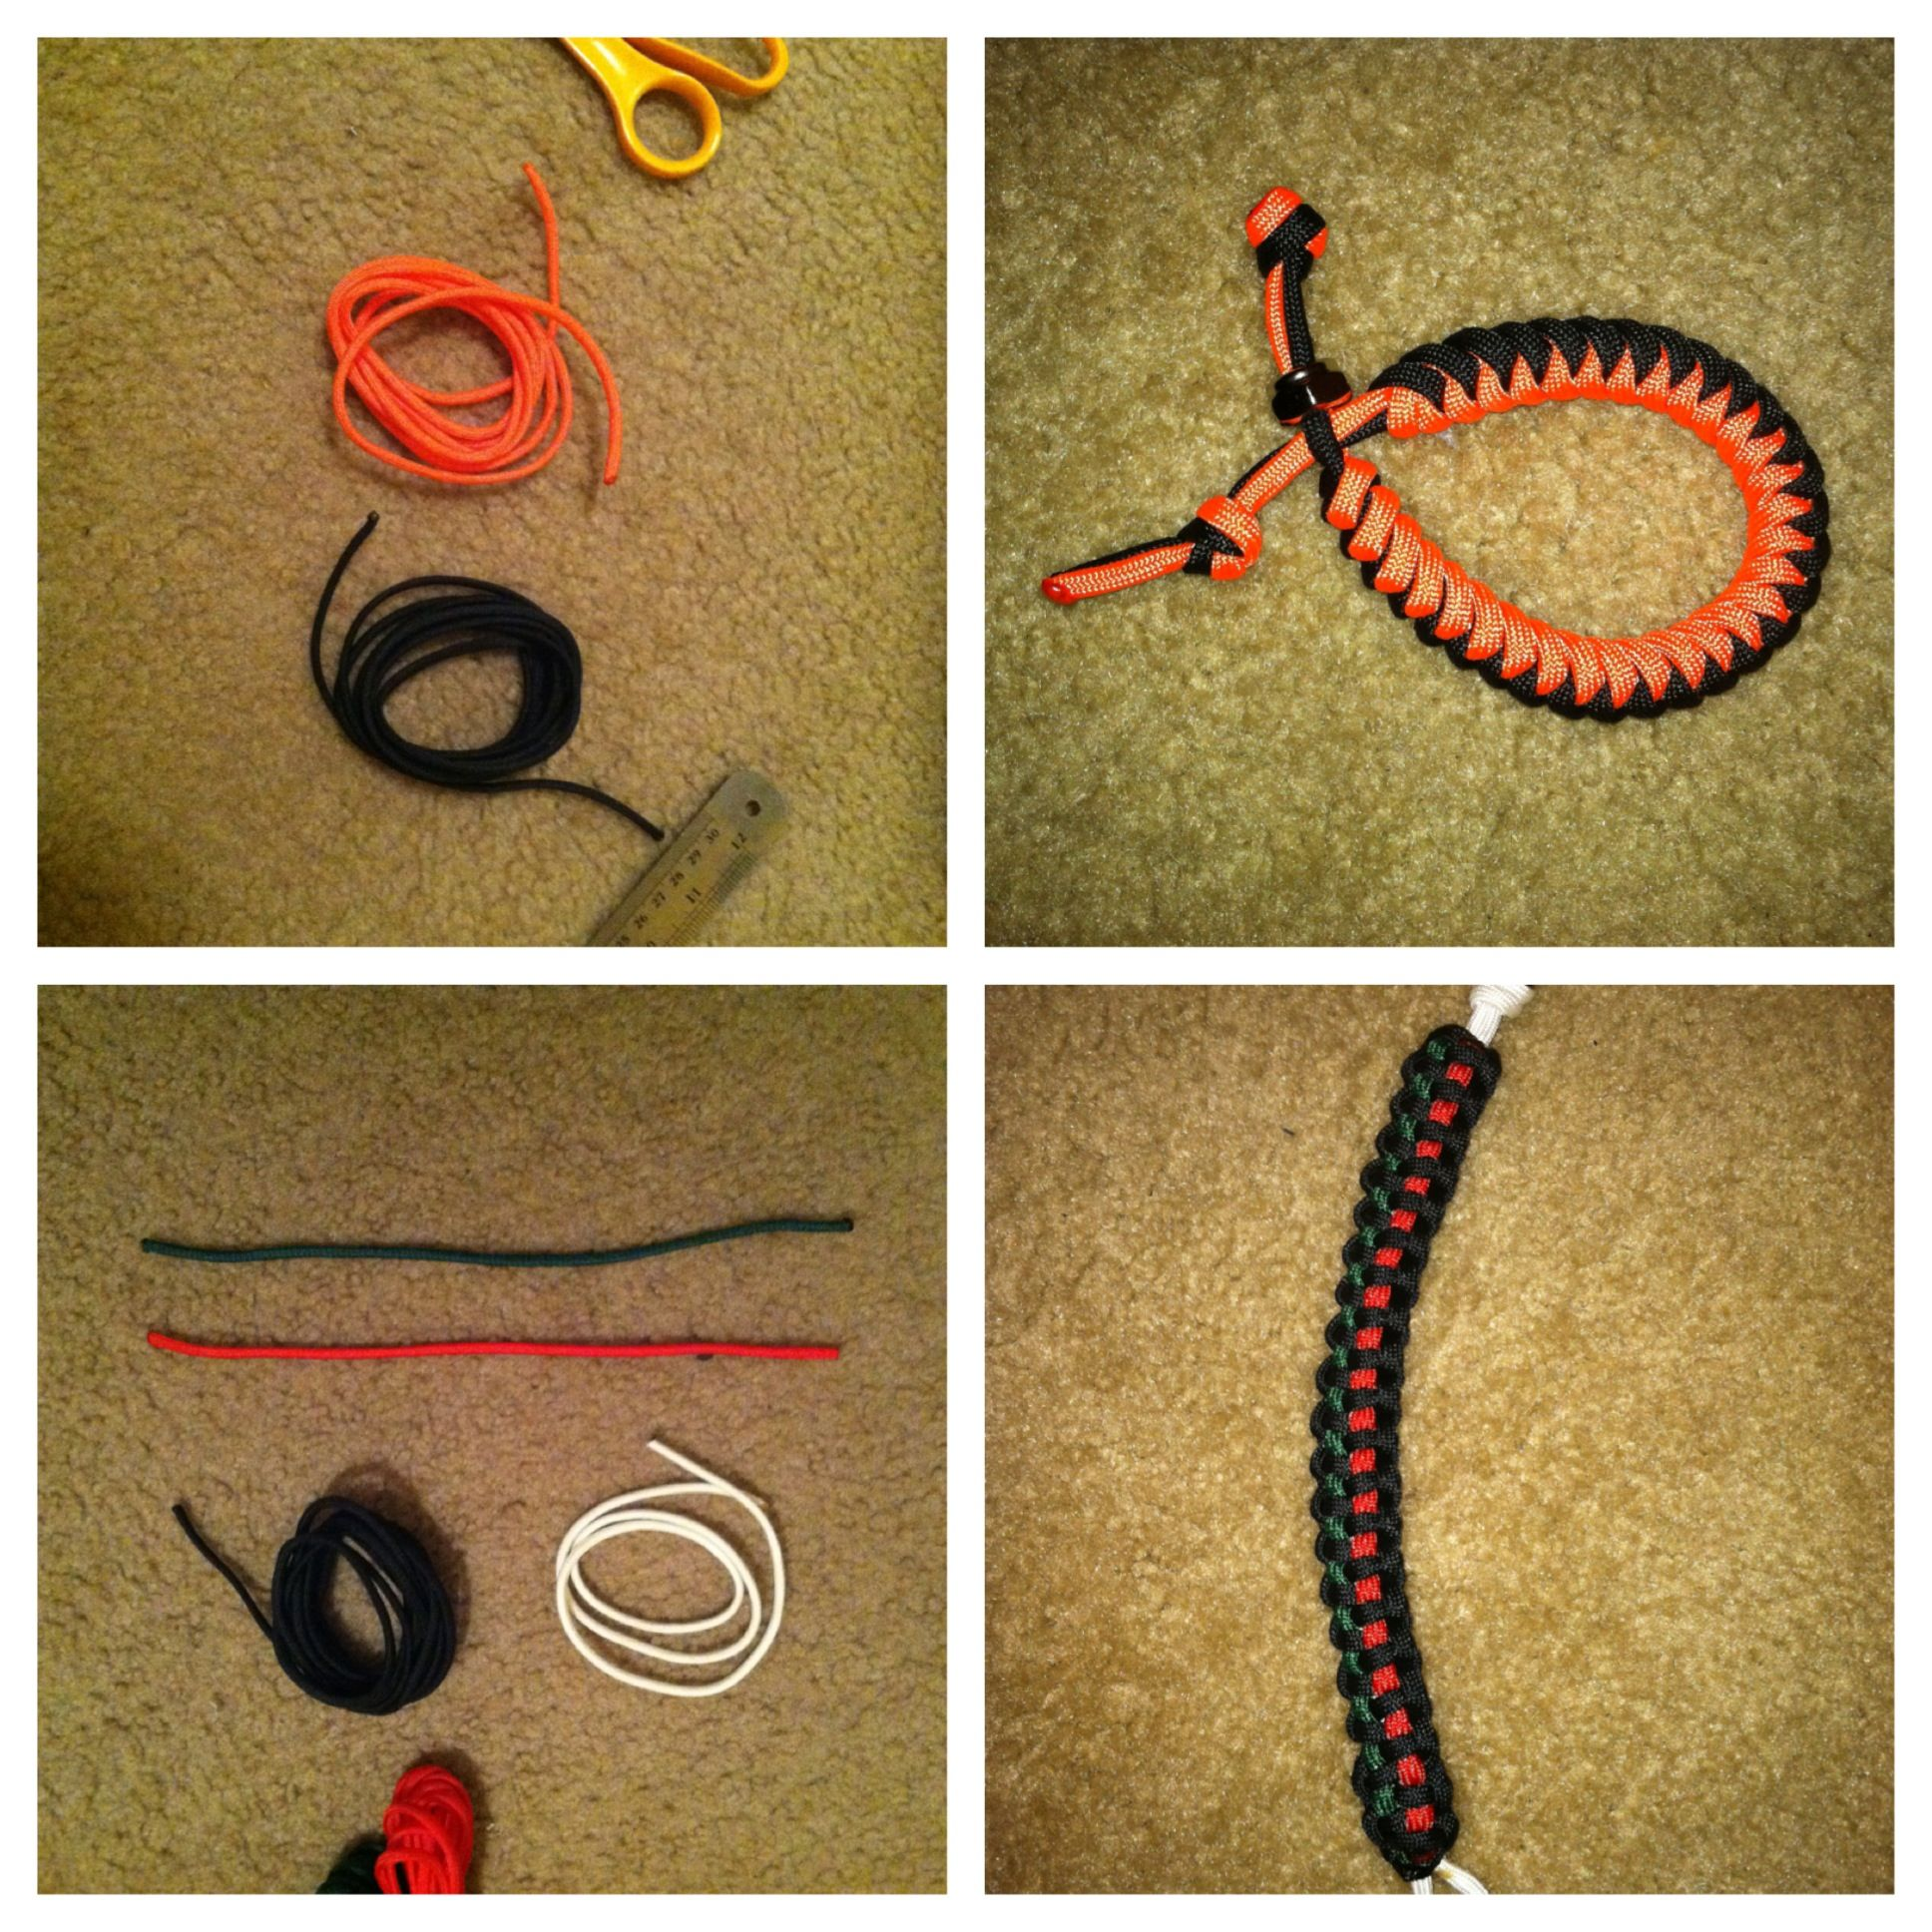 easy to make paracord bracelets �snake braid 6 feet of